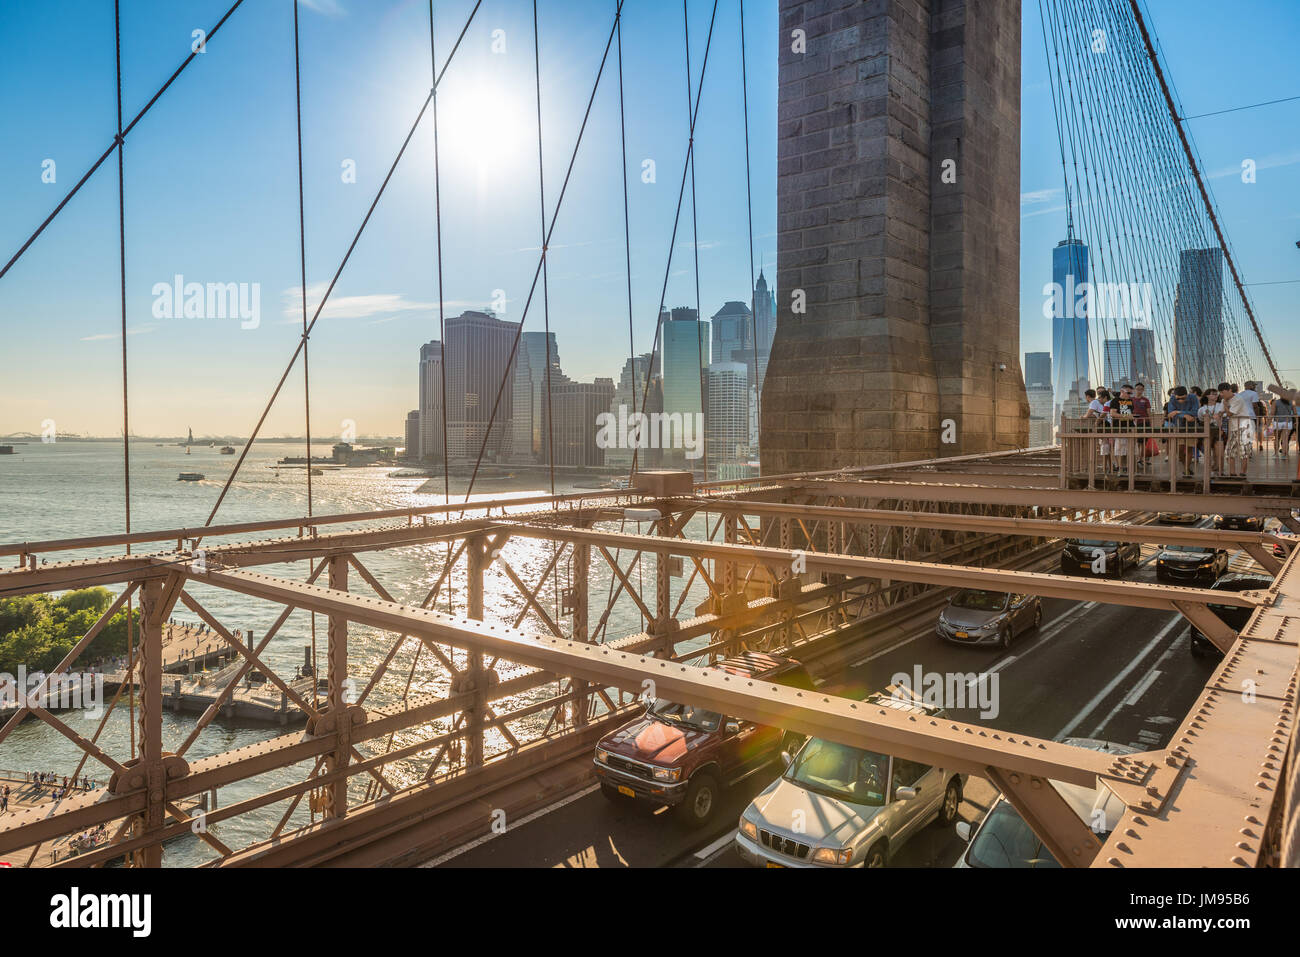 Views of Lower Manhattan and New York from the Brooklyn Bridge during summertime, New York, USA - Stock Image